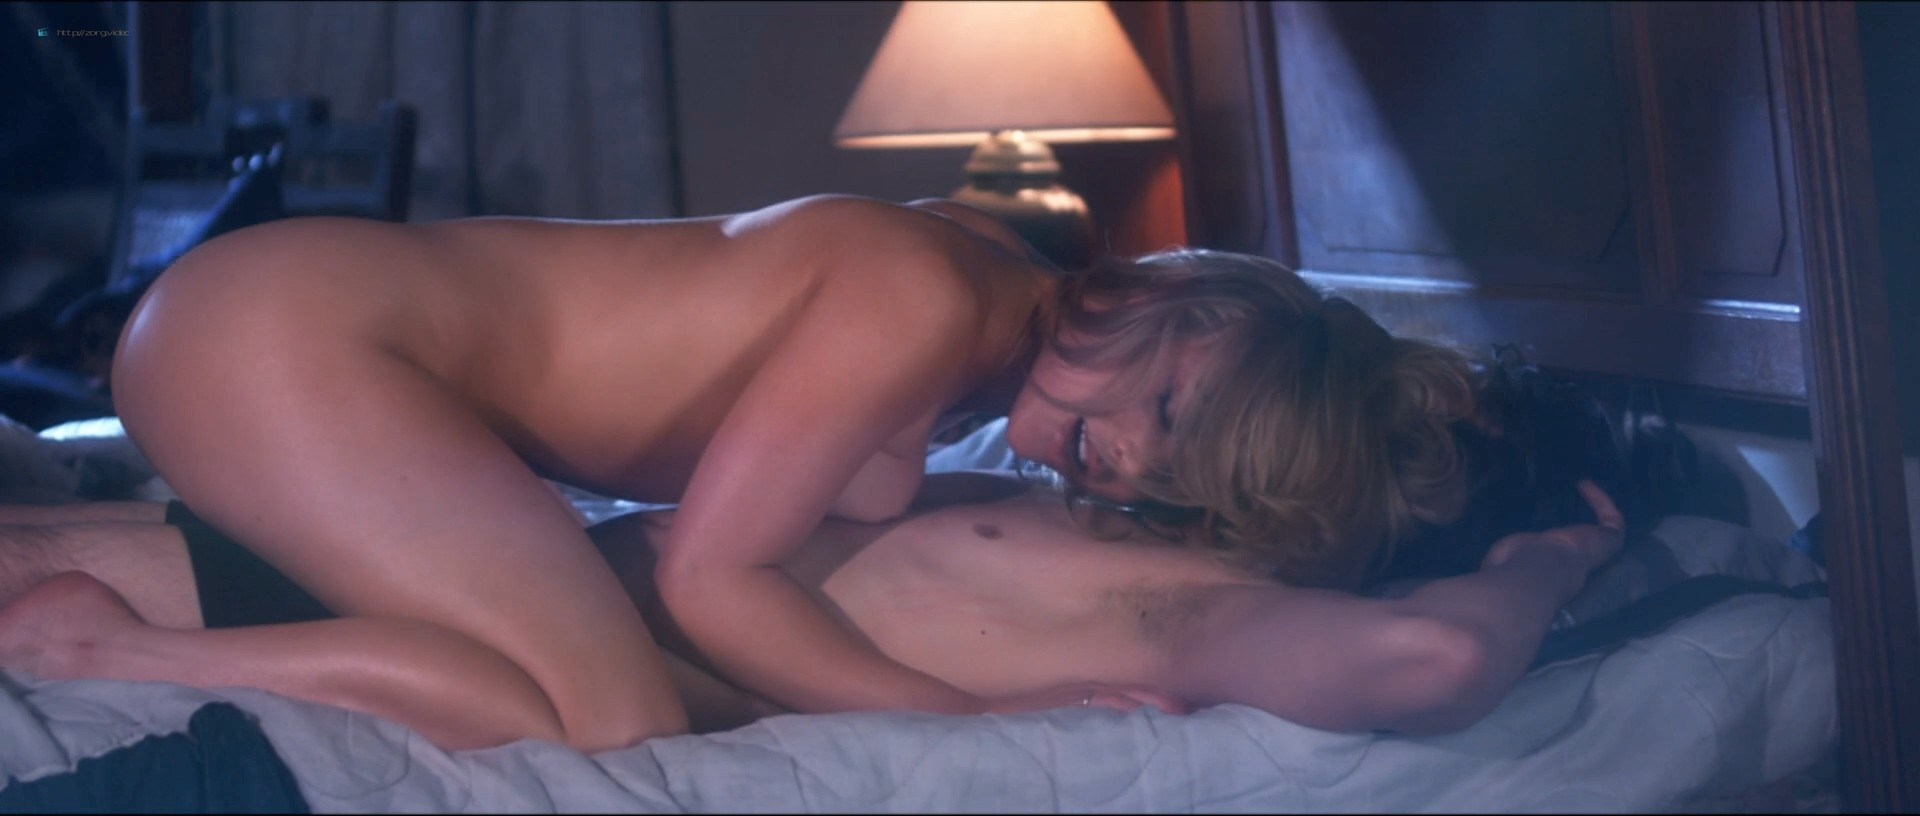 Kayden Kross nude and sex Nicole D'Angelo, Brooke Haven and others nude too - Blue Dream (2013) 1080p (17)